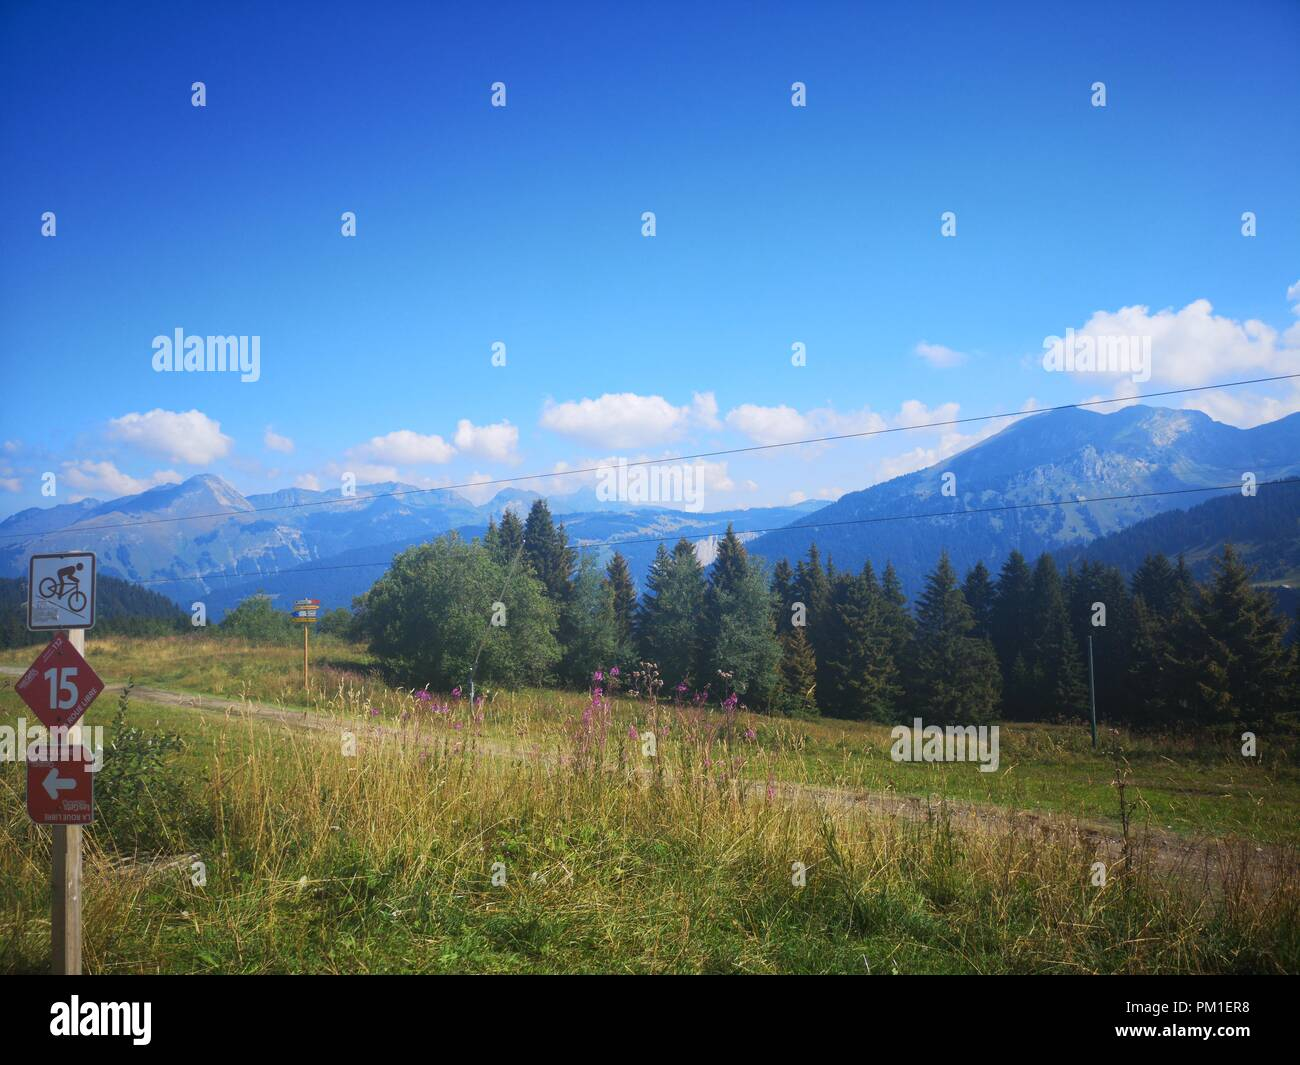 Spectacular Views In The French Alps - Stock Image